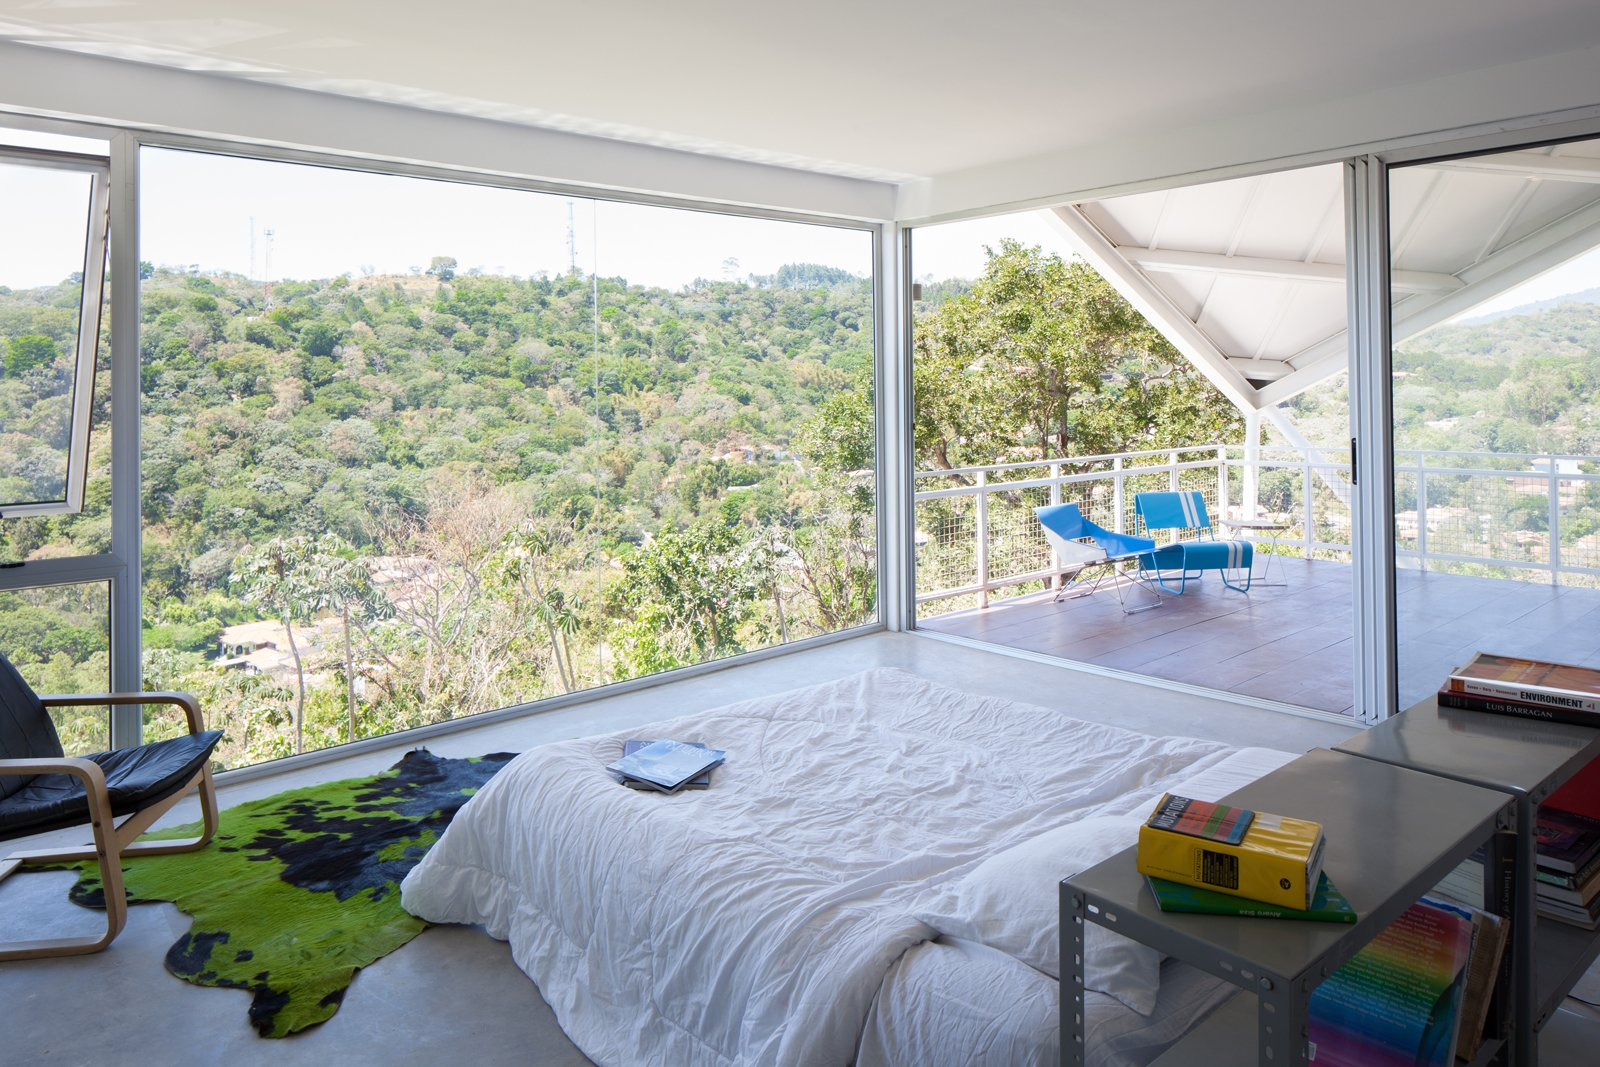 Floor-to-ceiling glass walls give the residents the illusion of living outdoors.  Photo 7 of 7 in Striking Green House with a View in El Salvador